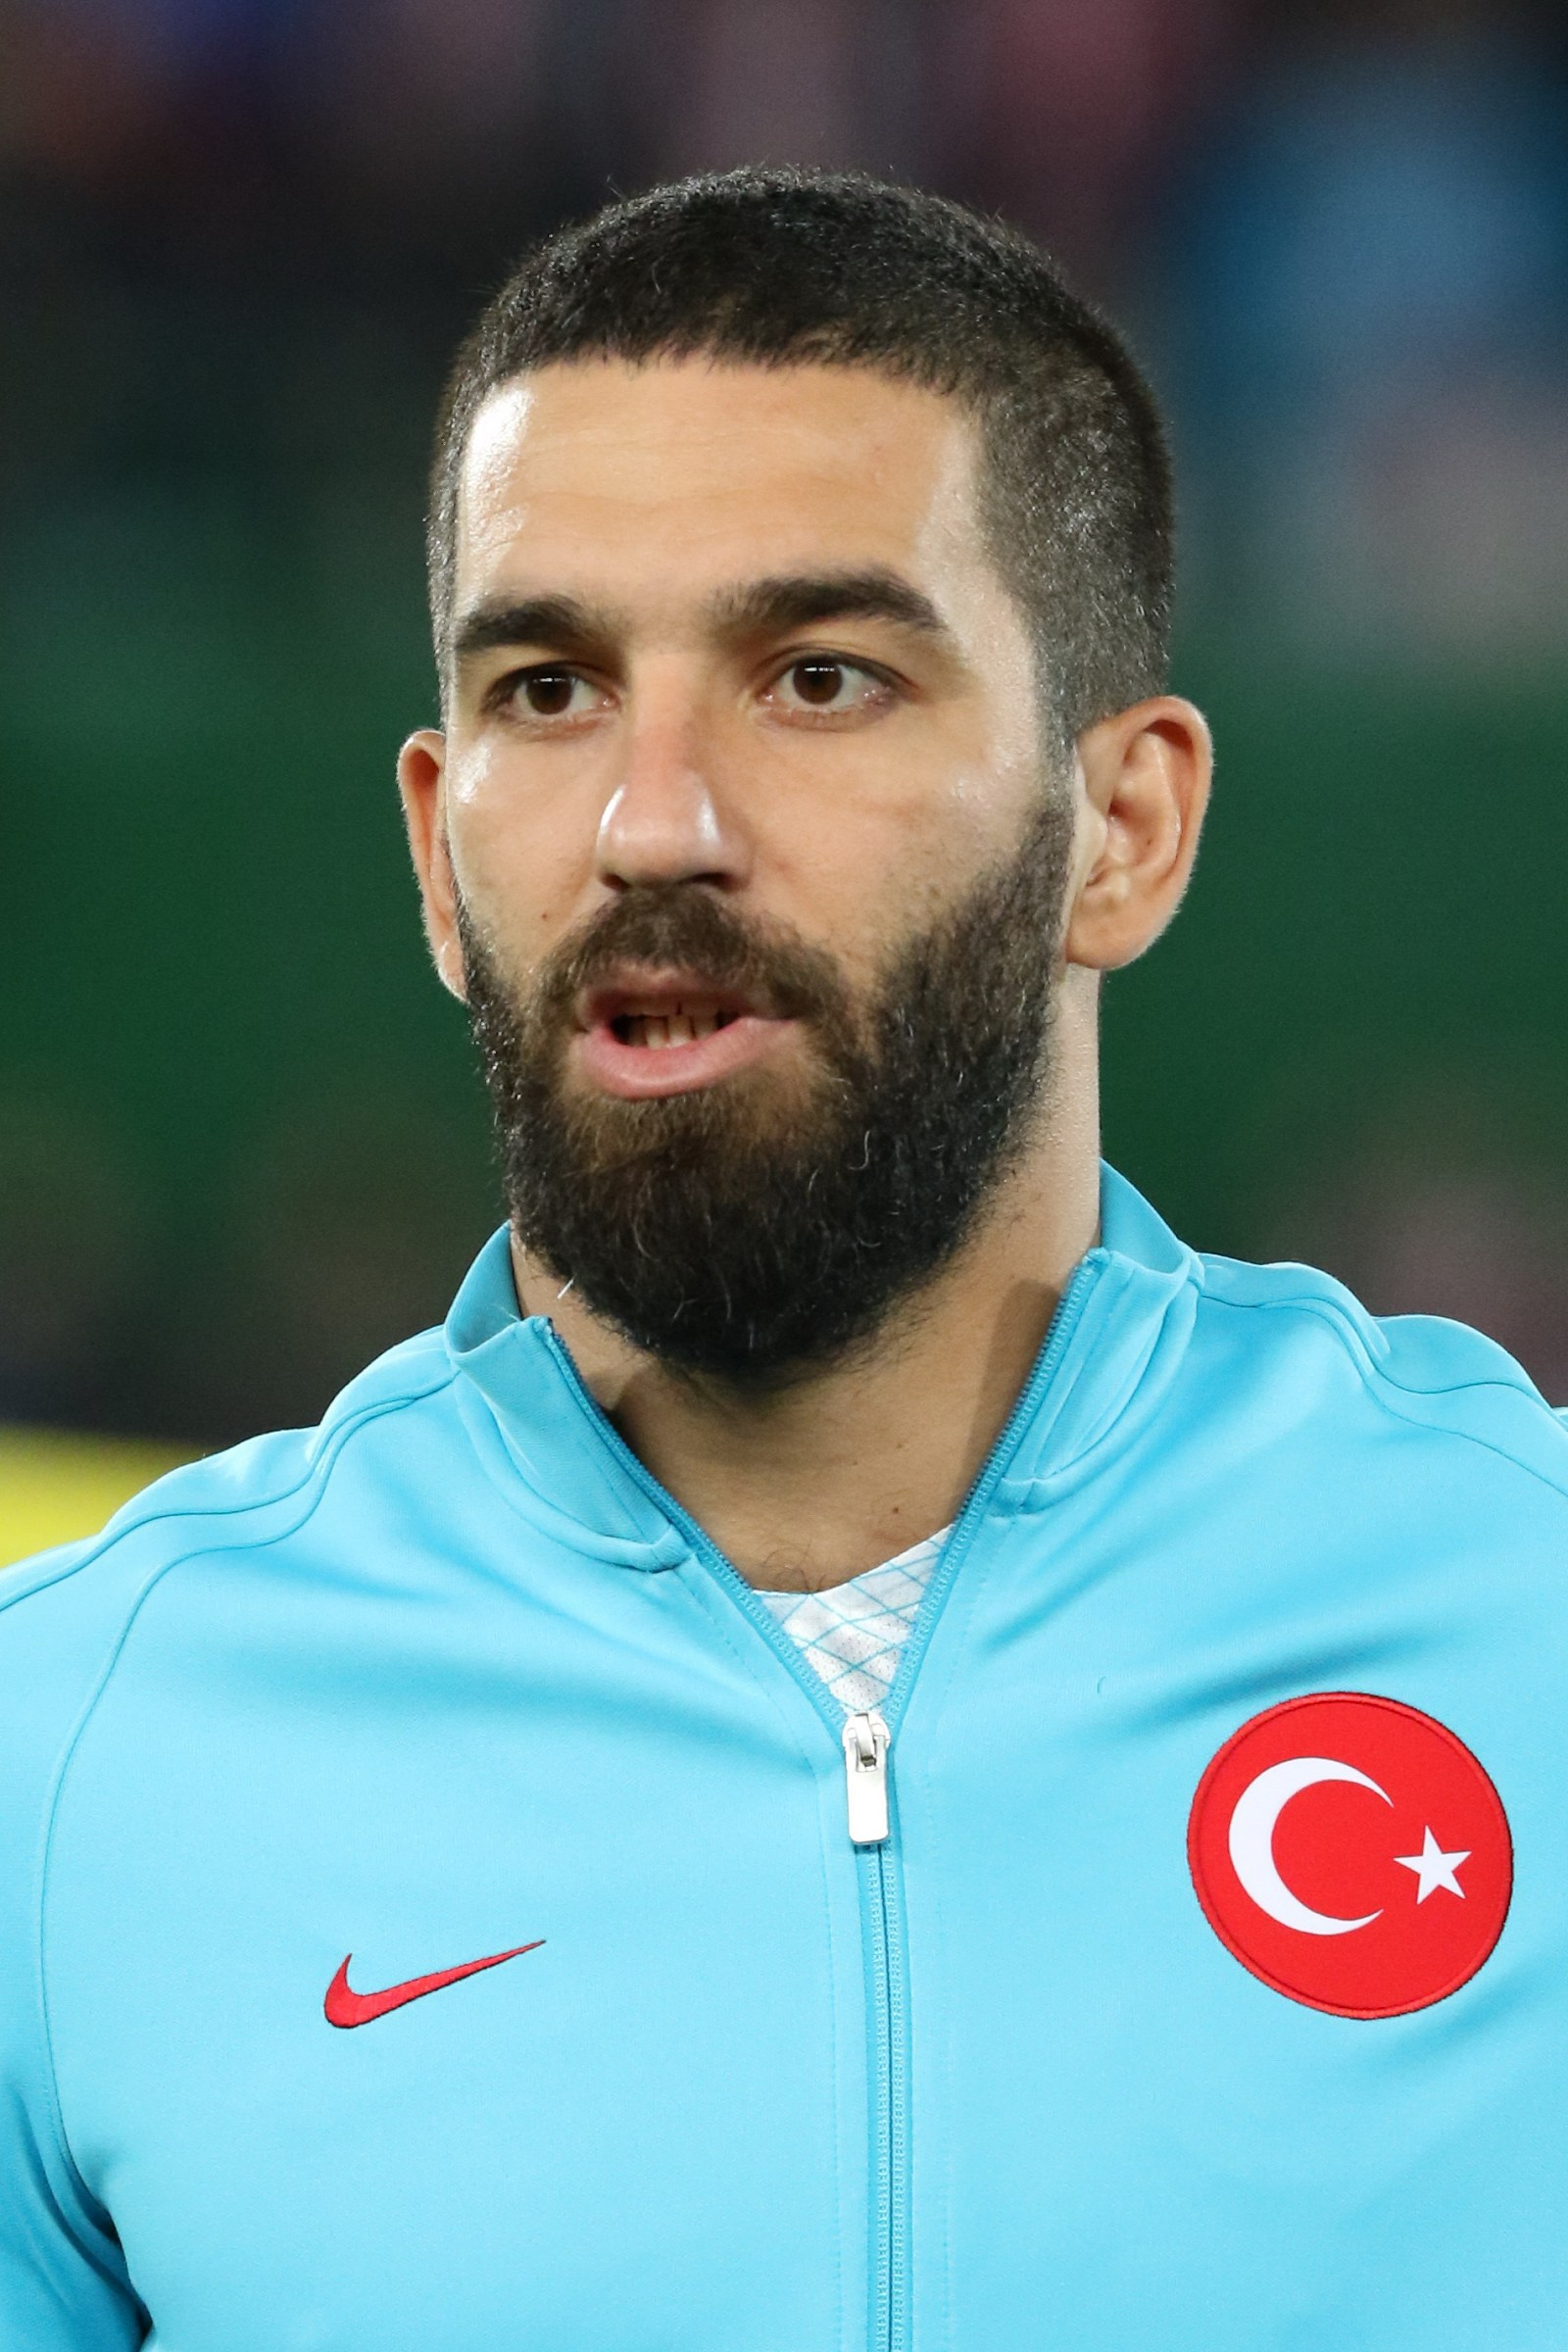 The 31-year old son of father Musa Turan and mother Fatma Turan Arda Turan in 2018 photo. Arda Turan earned a 8.5 million dollar salary - leaving the net worth at 38 million in 2018